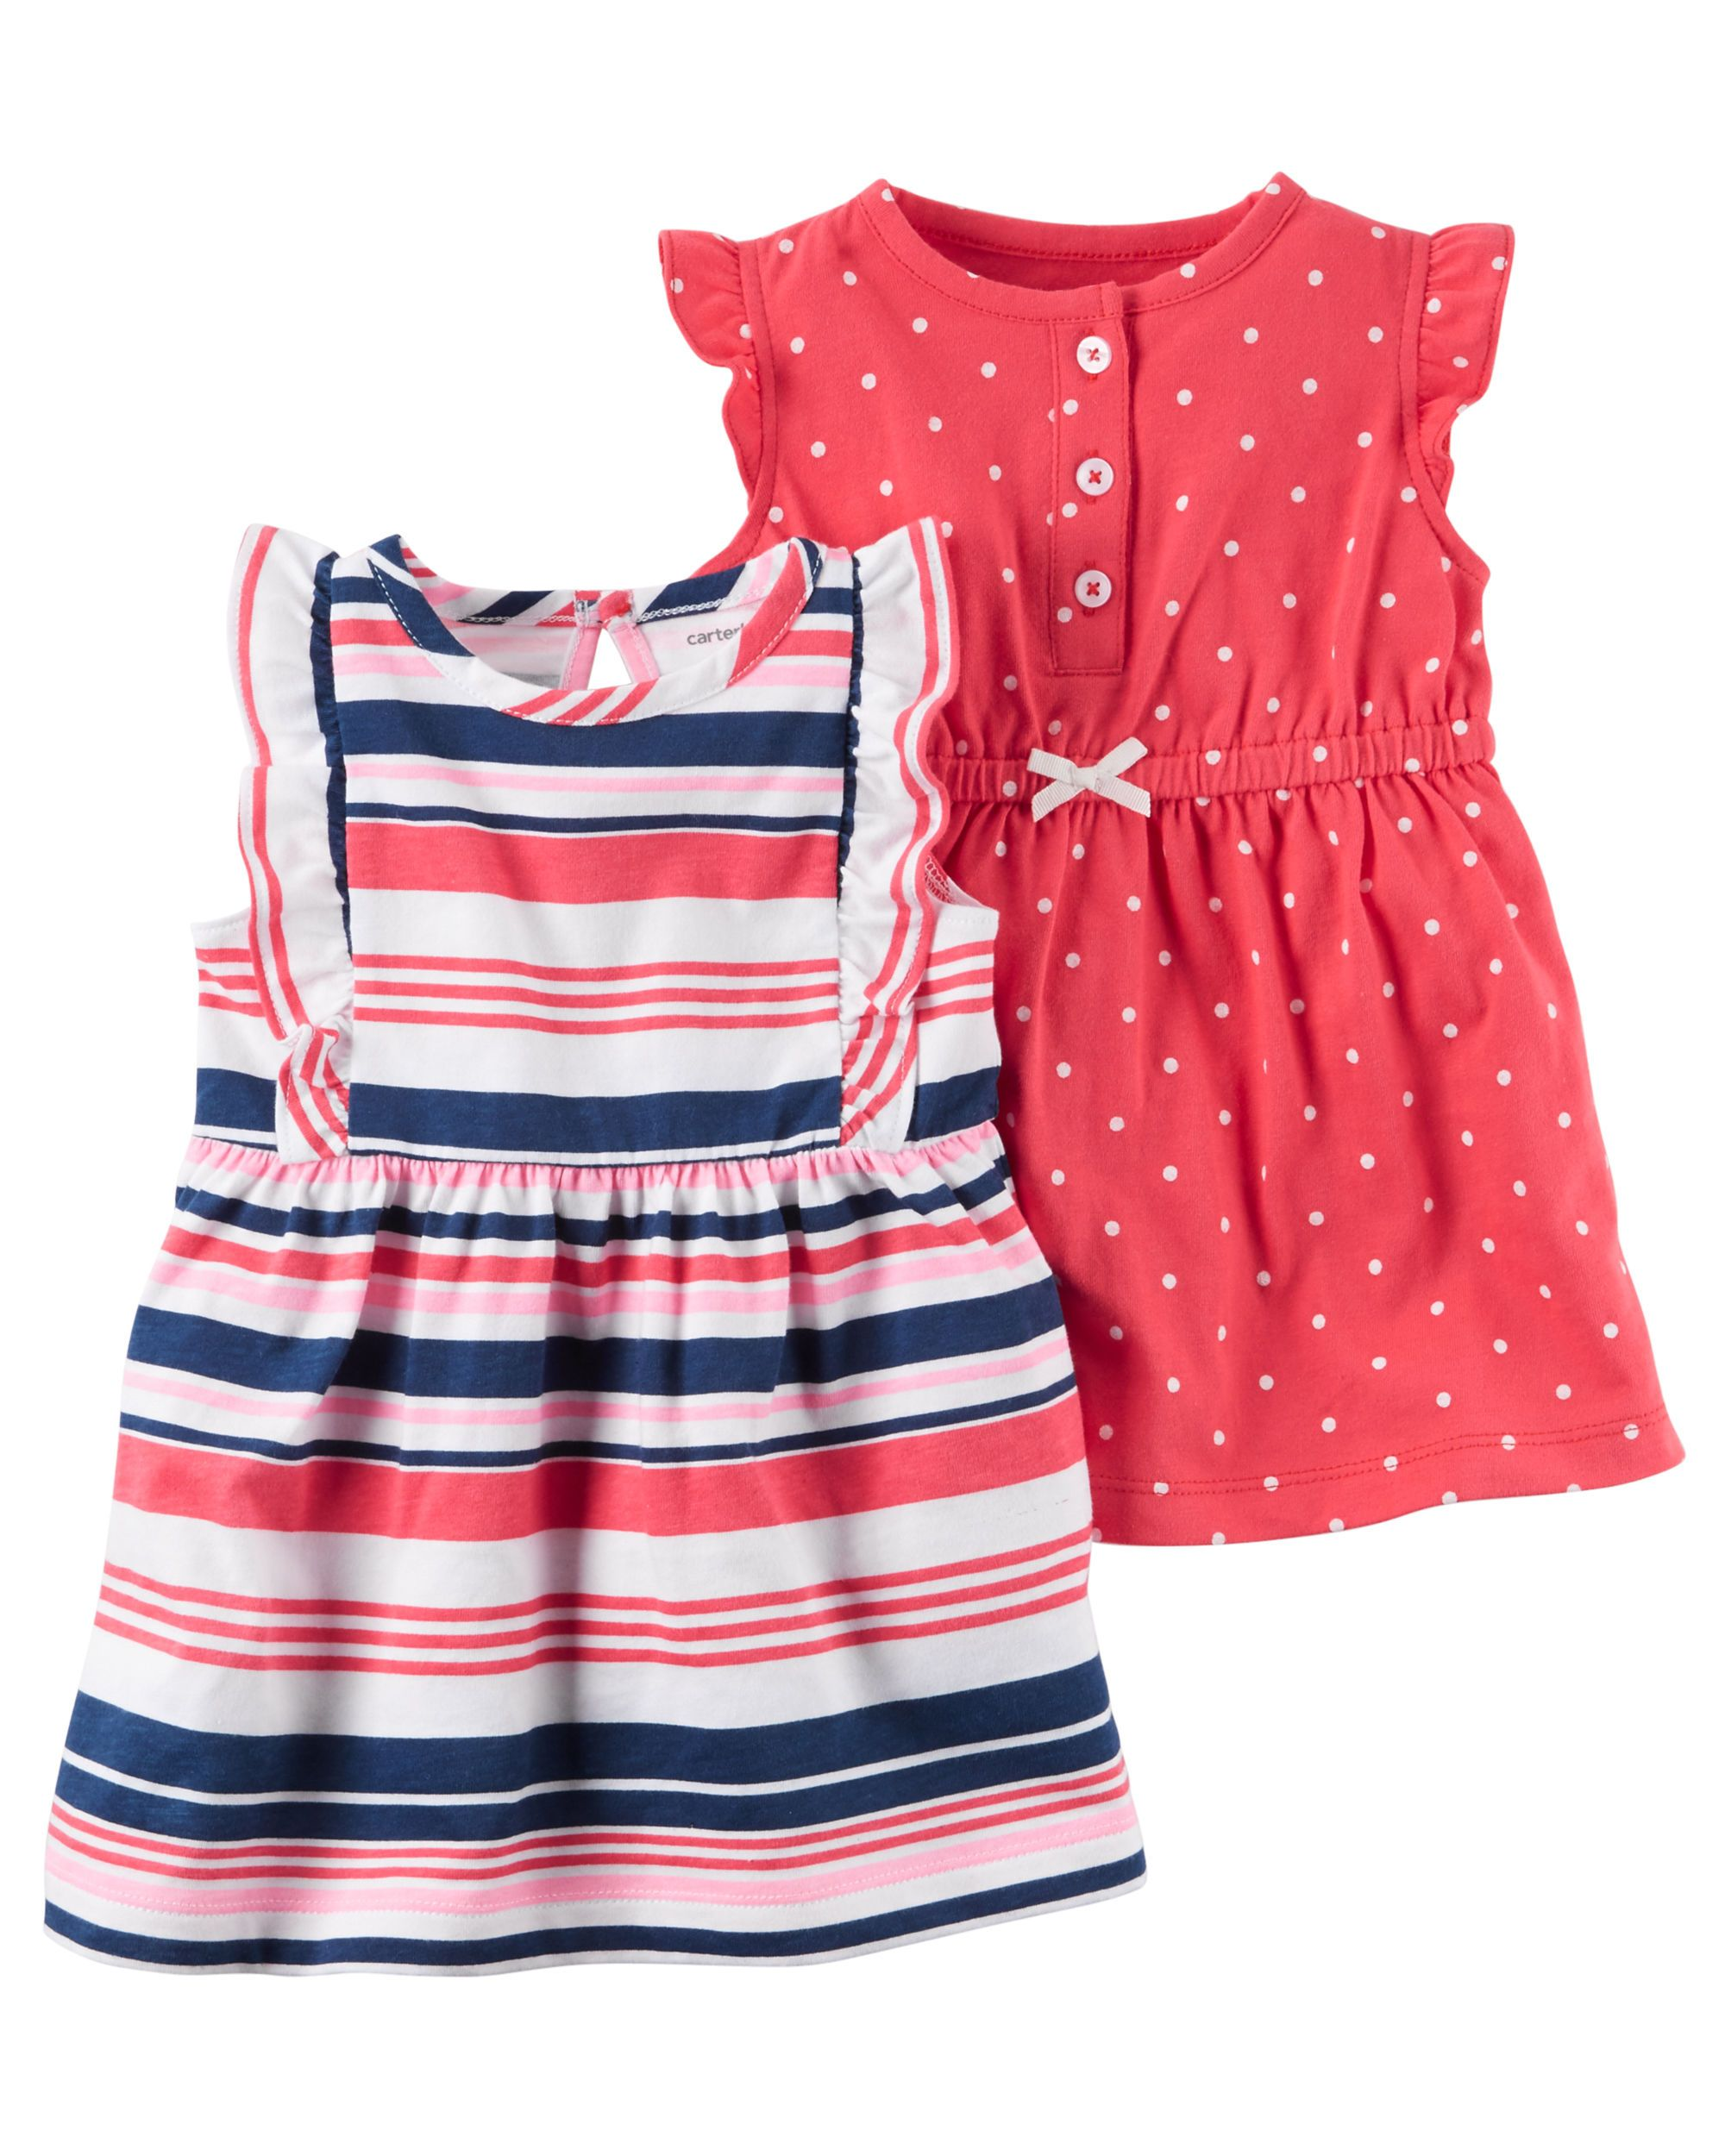 99f6065e2b9c Baby Girl 2-Pack Dress Set